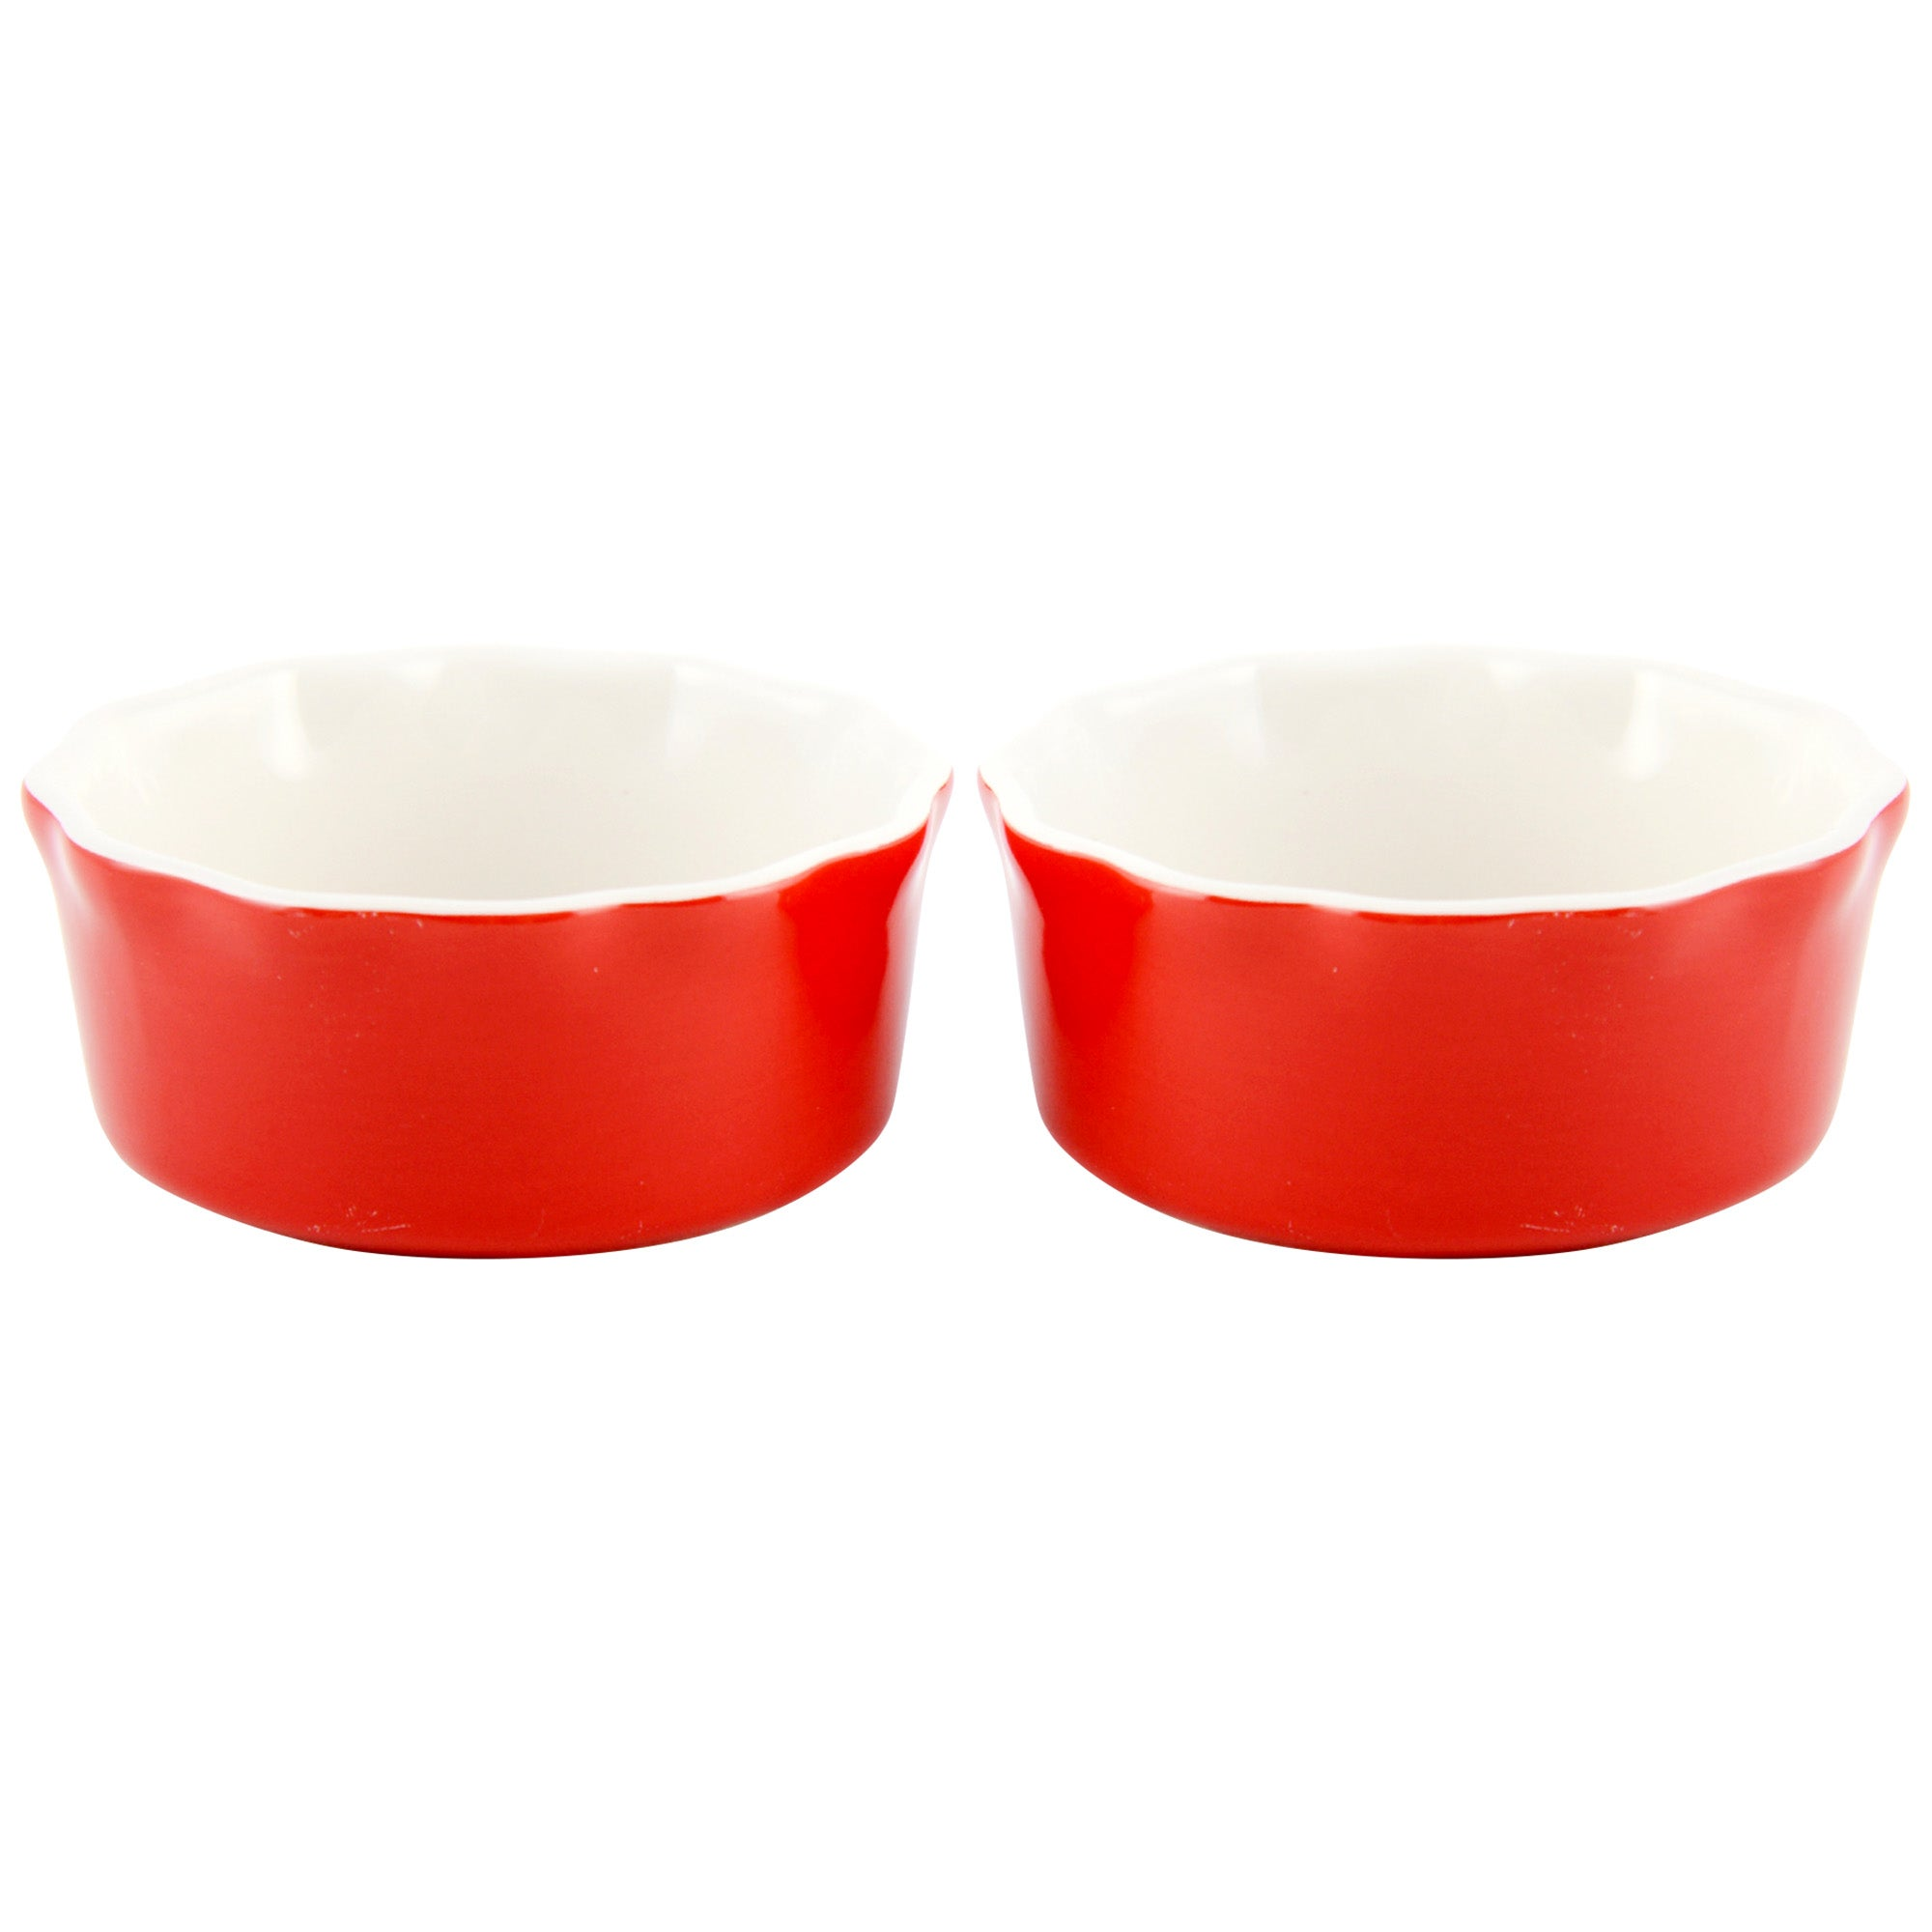 Red Farmstead Collection Set of 2 Ramekins